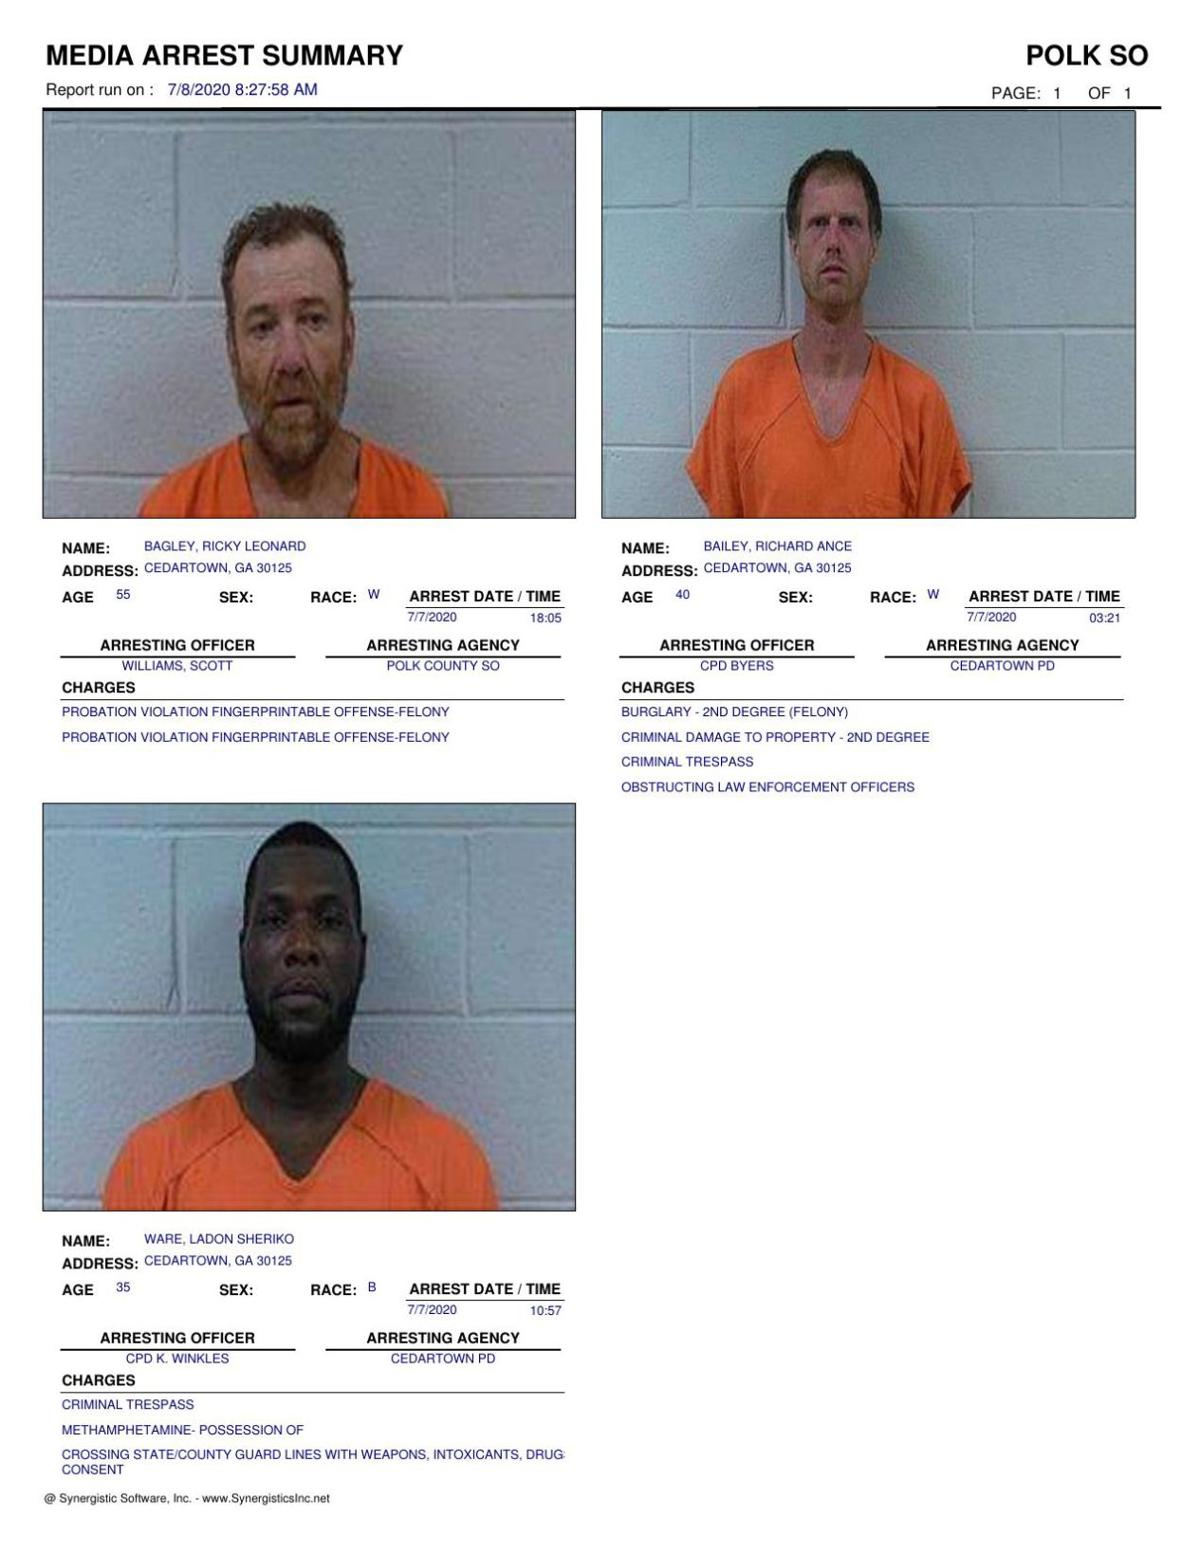 Polk County Jail Report for Wednesday, July 8